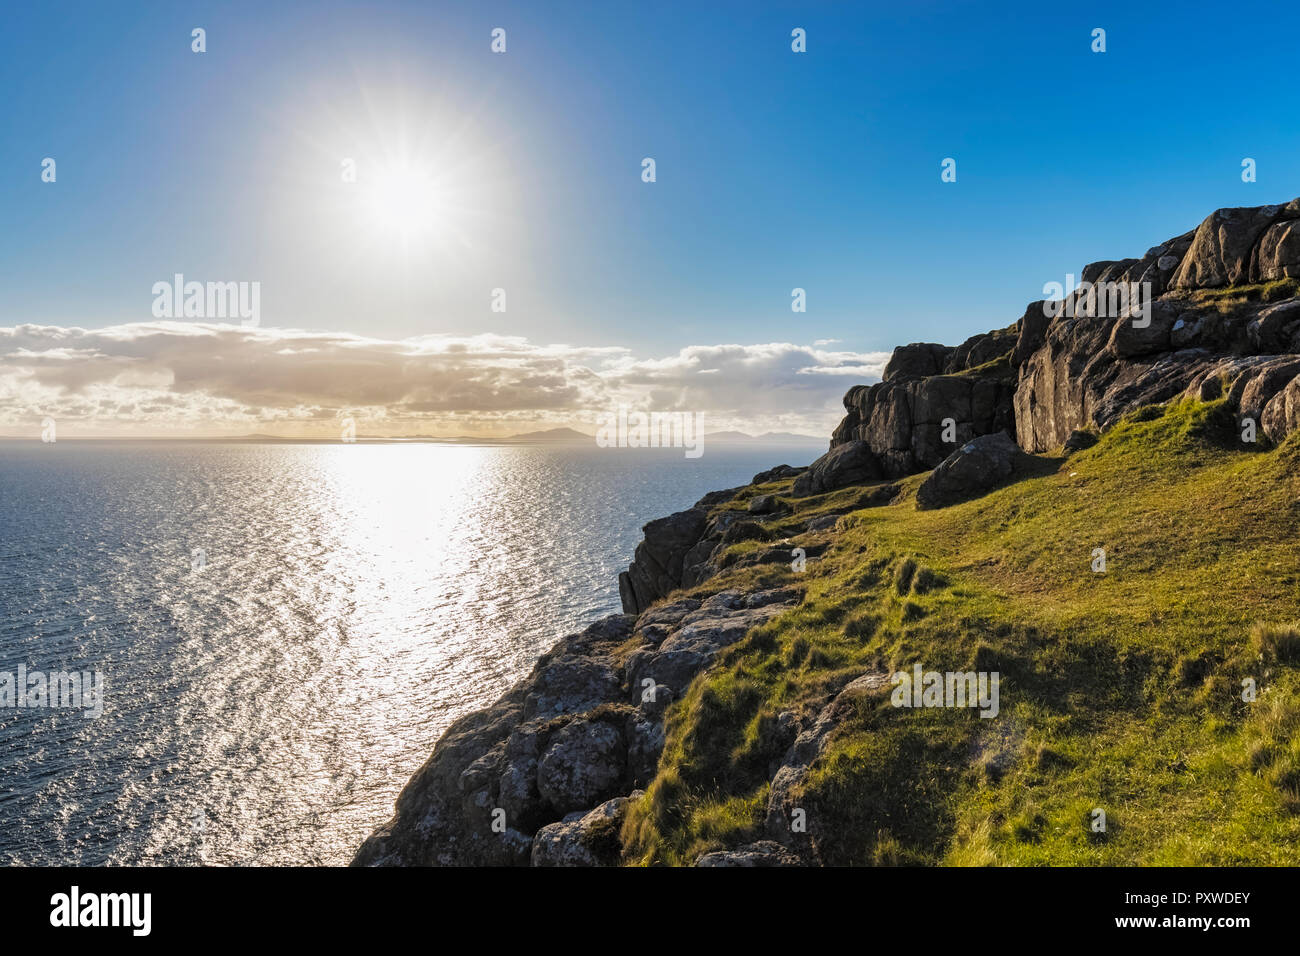 UK, Scotland, Inner Hebrides, Isle of Skye, Neist Point - Stock Image